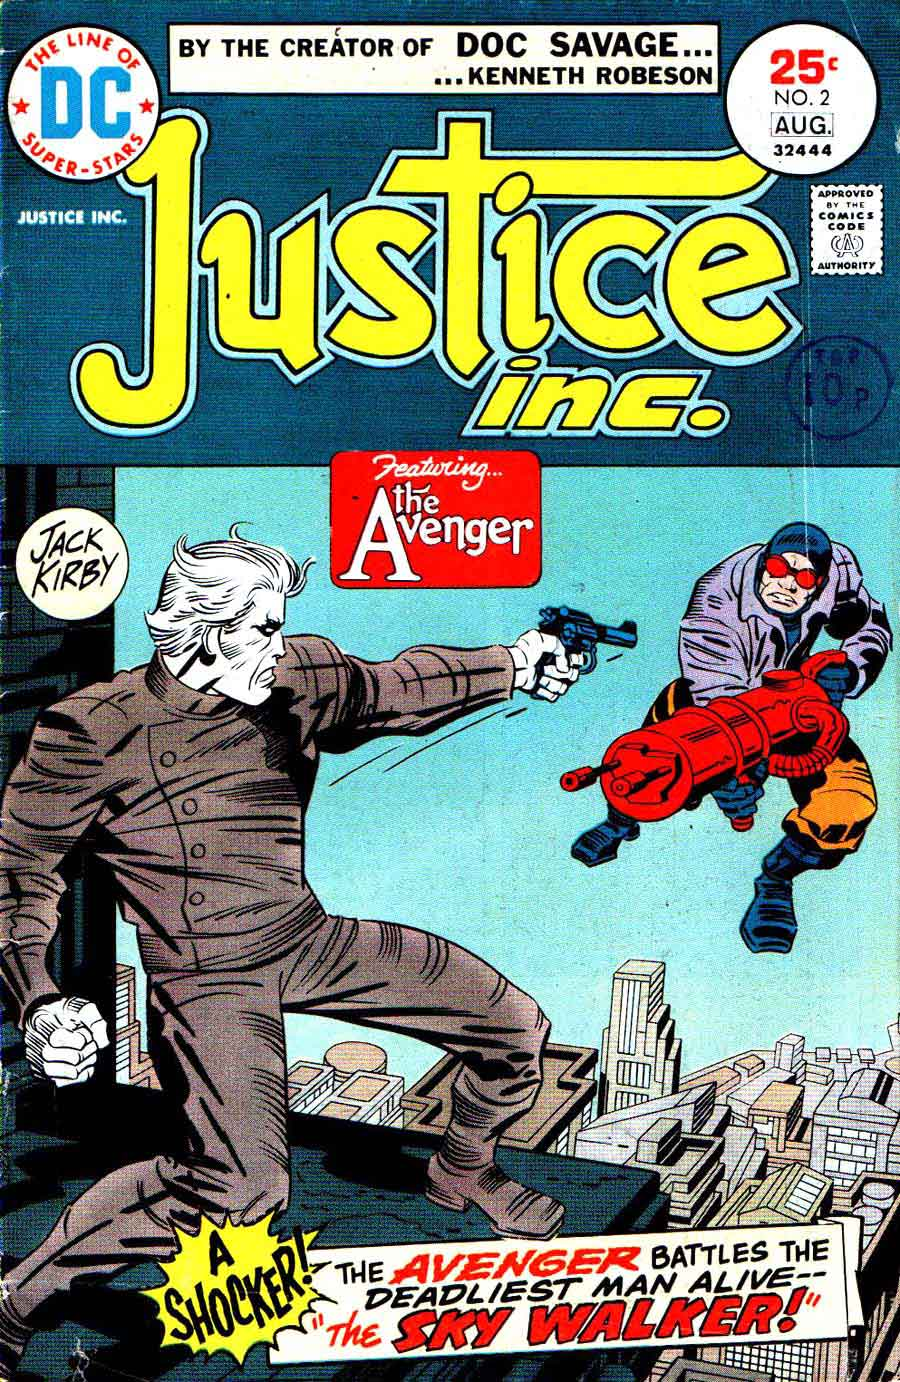 Justice Inc. v1 #2 dc bronze age comic book cover art by Jack Kirby